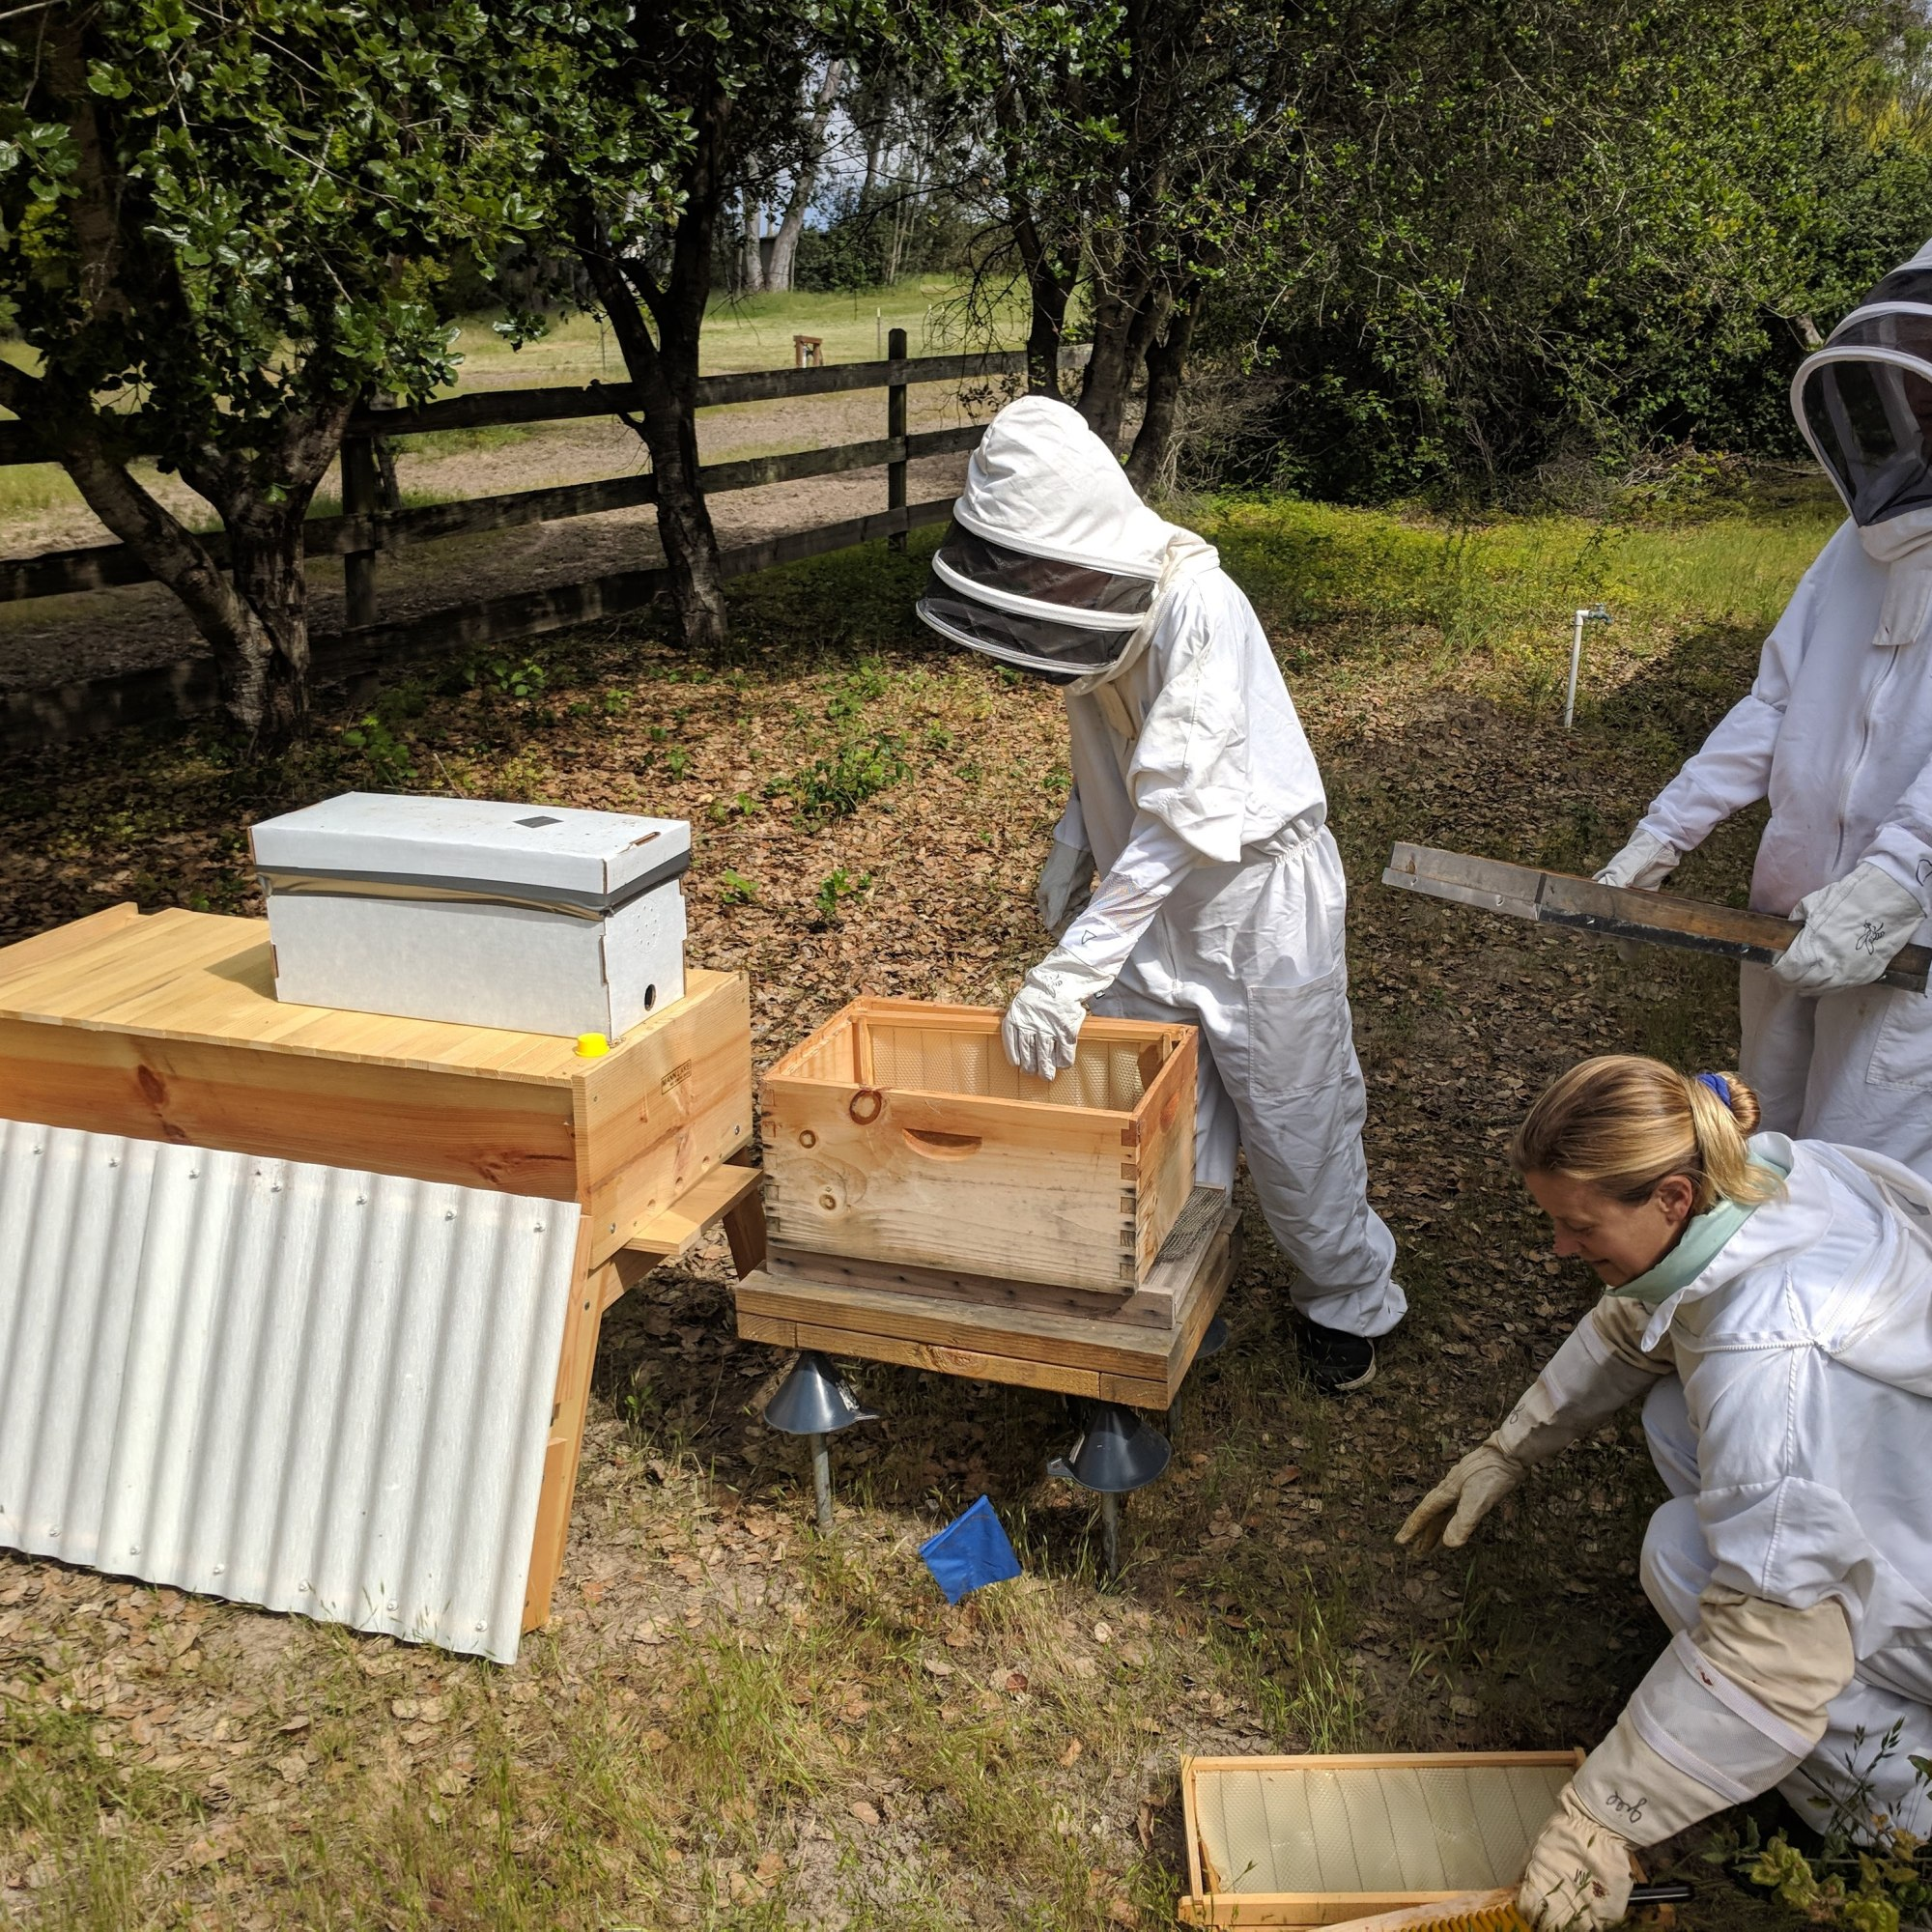 students in beekeeping suits